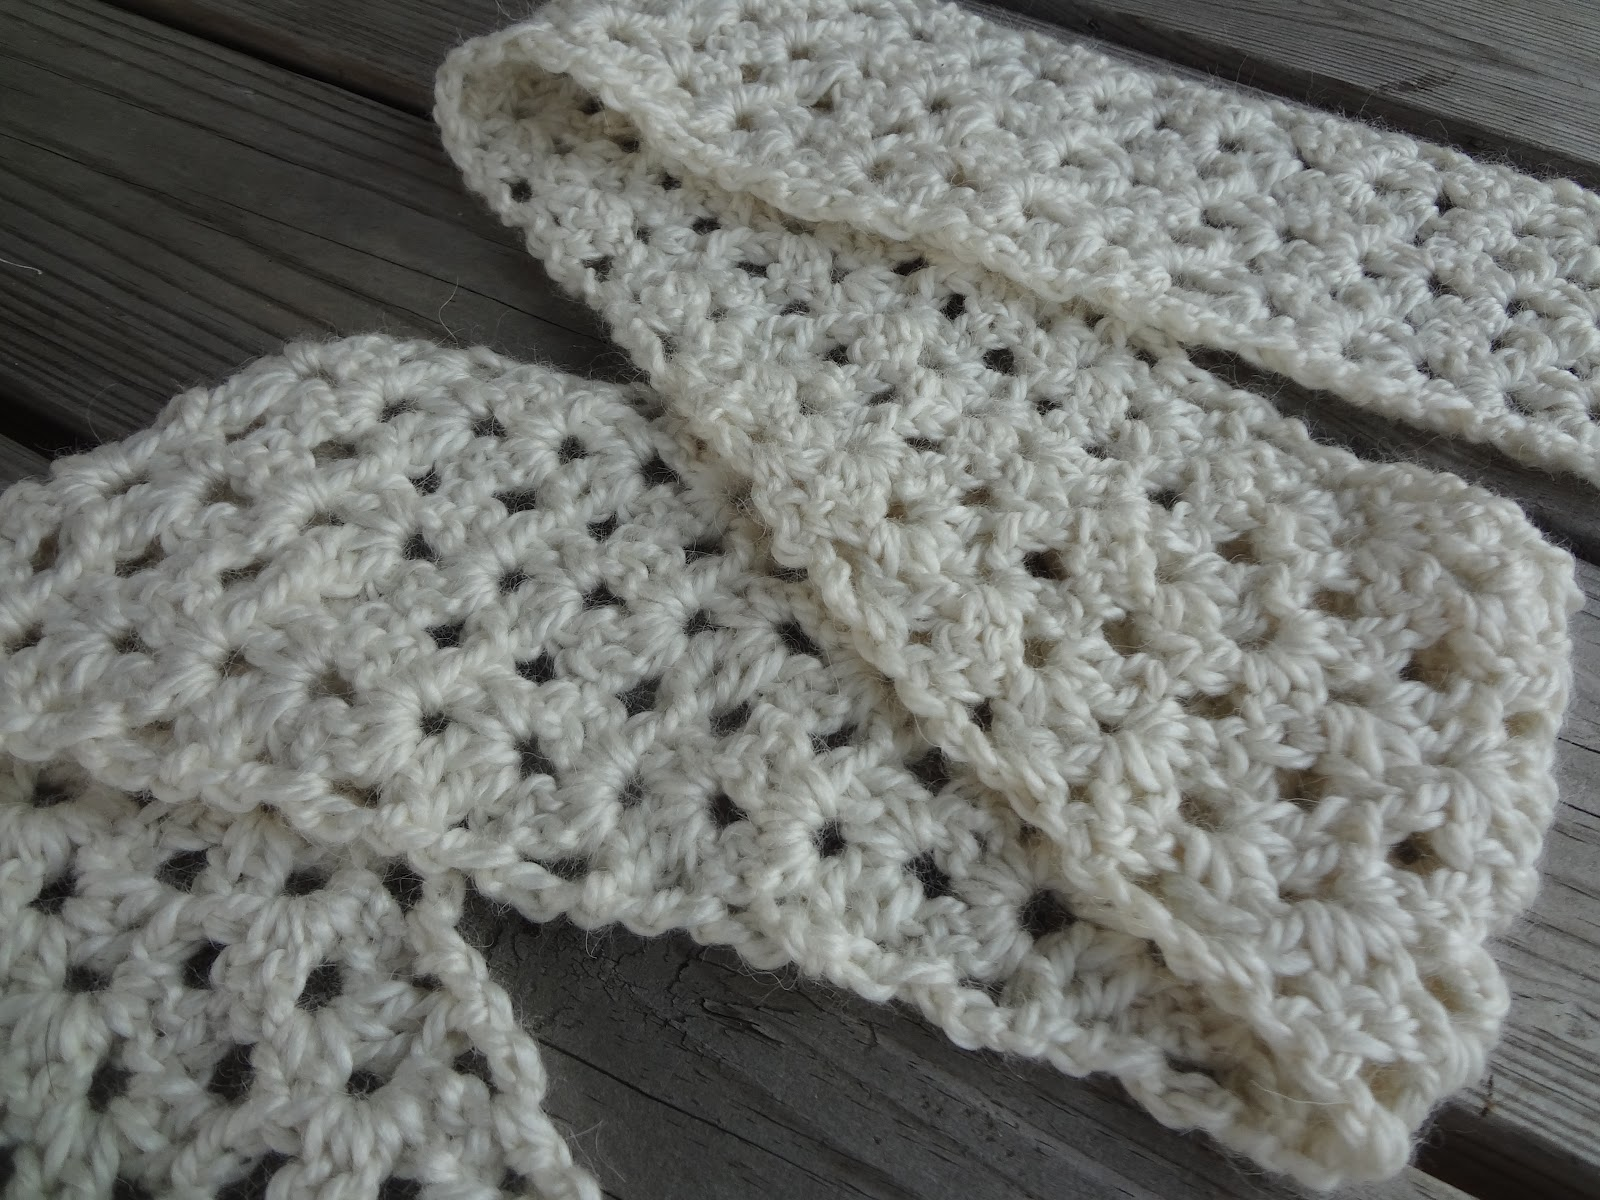 Crochet Stitches Good For Scarves : Fiber Flux: Free Crochet Pattern...Vanilla Bean Scarf!